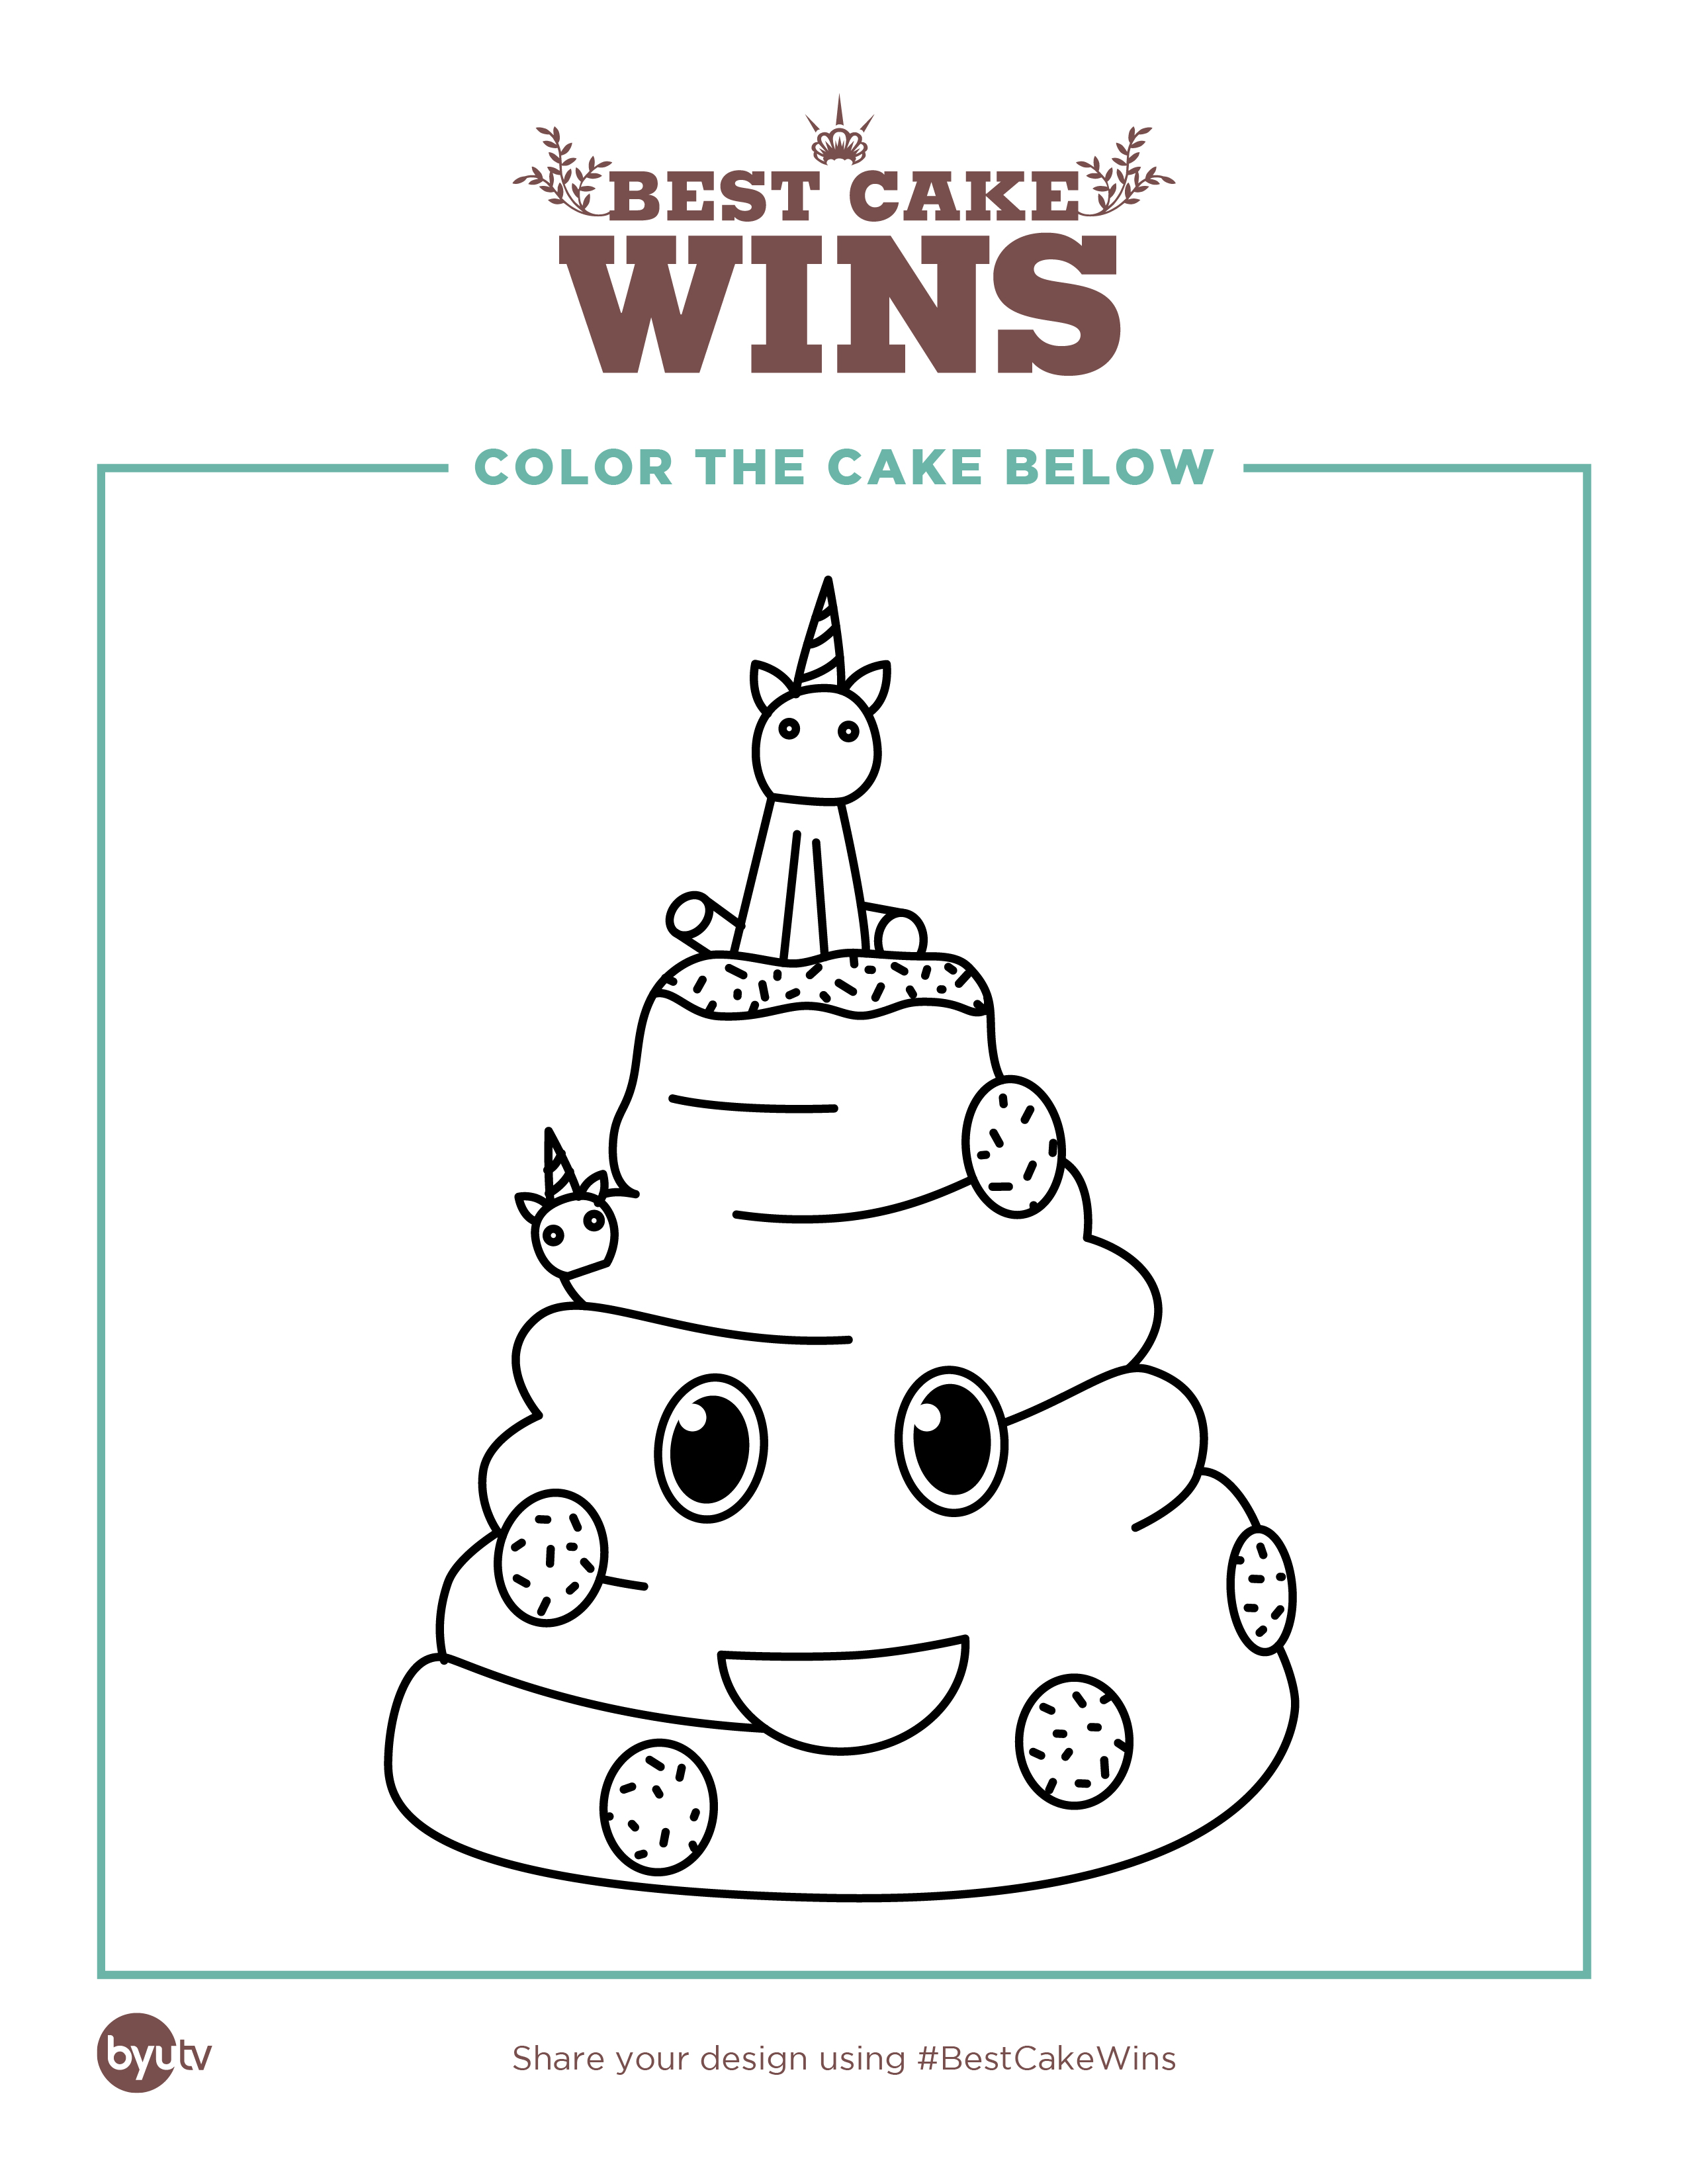 Best Cake Wins Coloring Pages - BYUtv